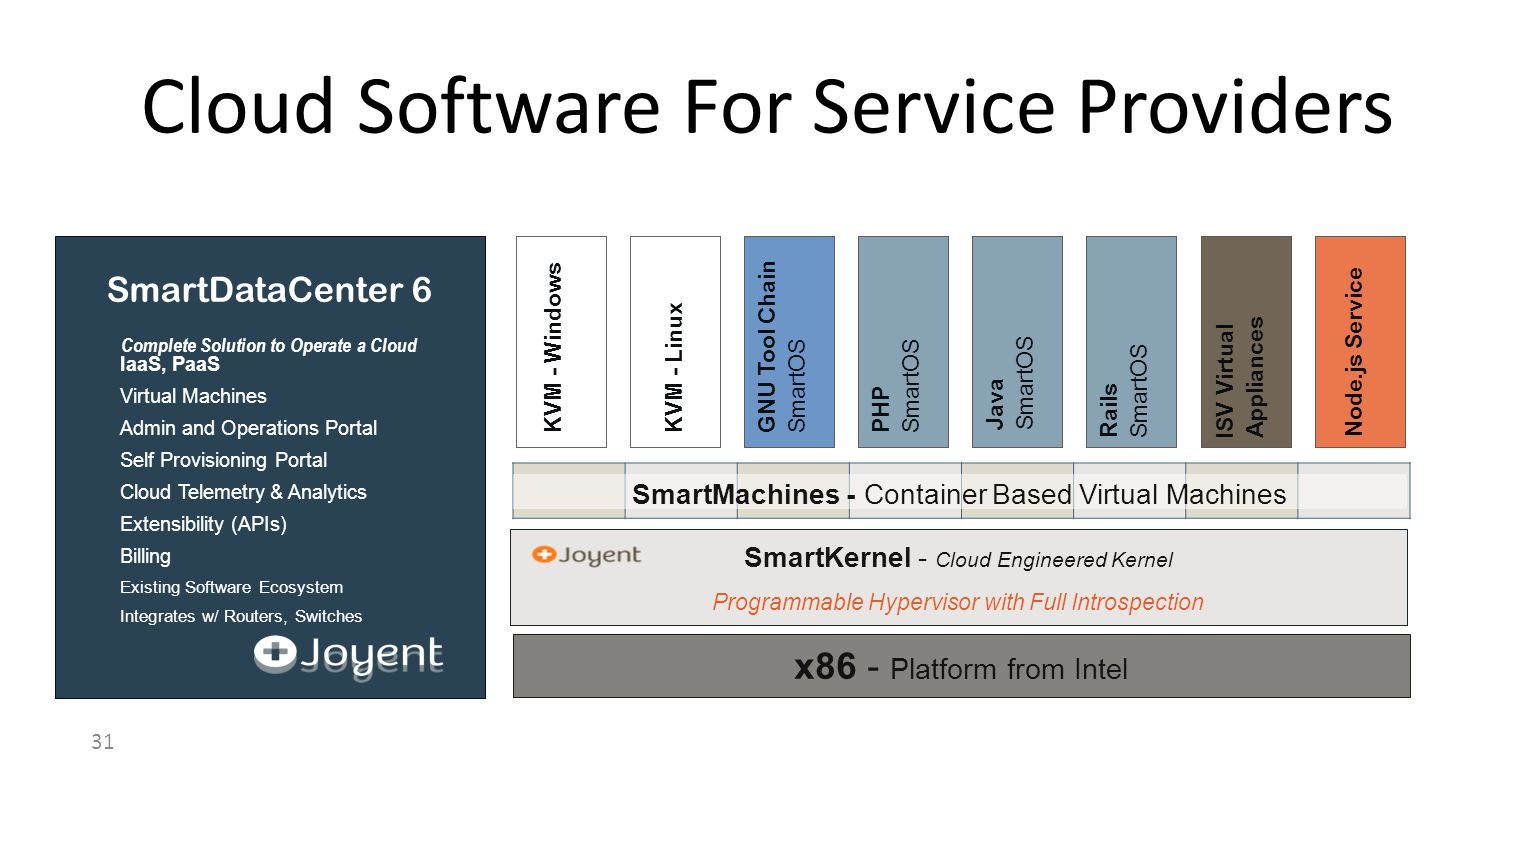 31 Cloud Software For Service Providers x86 - Platform from Intel SmartKernel - Cloud Engineered Kernel Programmable Hypervisor with Full Introspection SmartDataCenter 6 Complete Solution to Operate a Cloud IaaS, PaaS Virtual Machines Admin and Operations Portal Self Provisioning Portal Cloud Telemetry & Analytics Extensibility (APIs) Billing Existing Software Ecosystem Integrates w/ Routers, Switches Node.js Service ISV Virtual Appliances GNU Tool Chain SmartOS KVM - Linux KVM - WindowsPHP SmartOS Java SmartOS Rails SmartOS SmartMachines - Container Based Virtual Machines